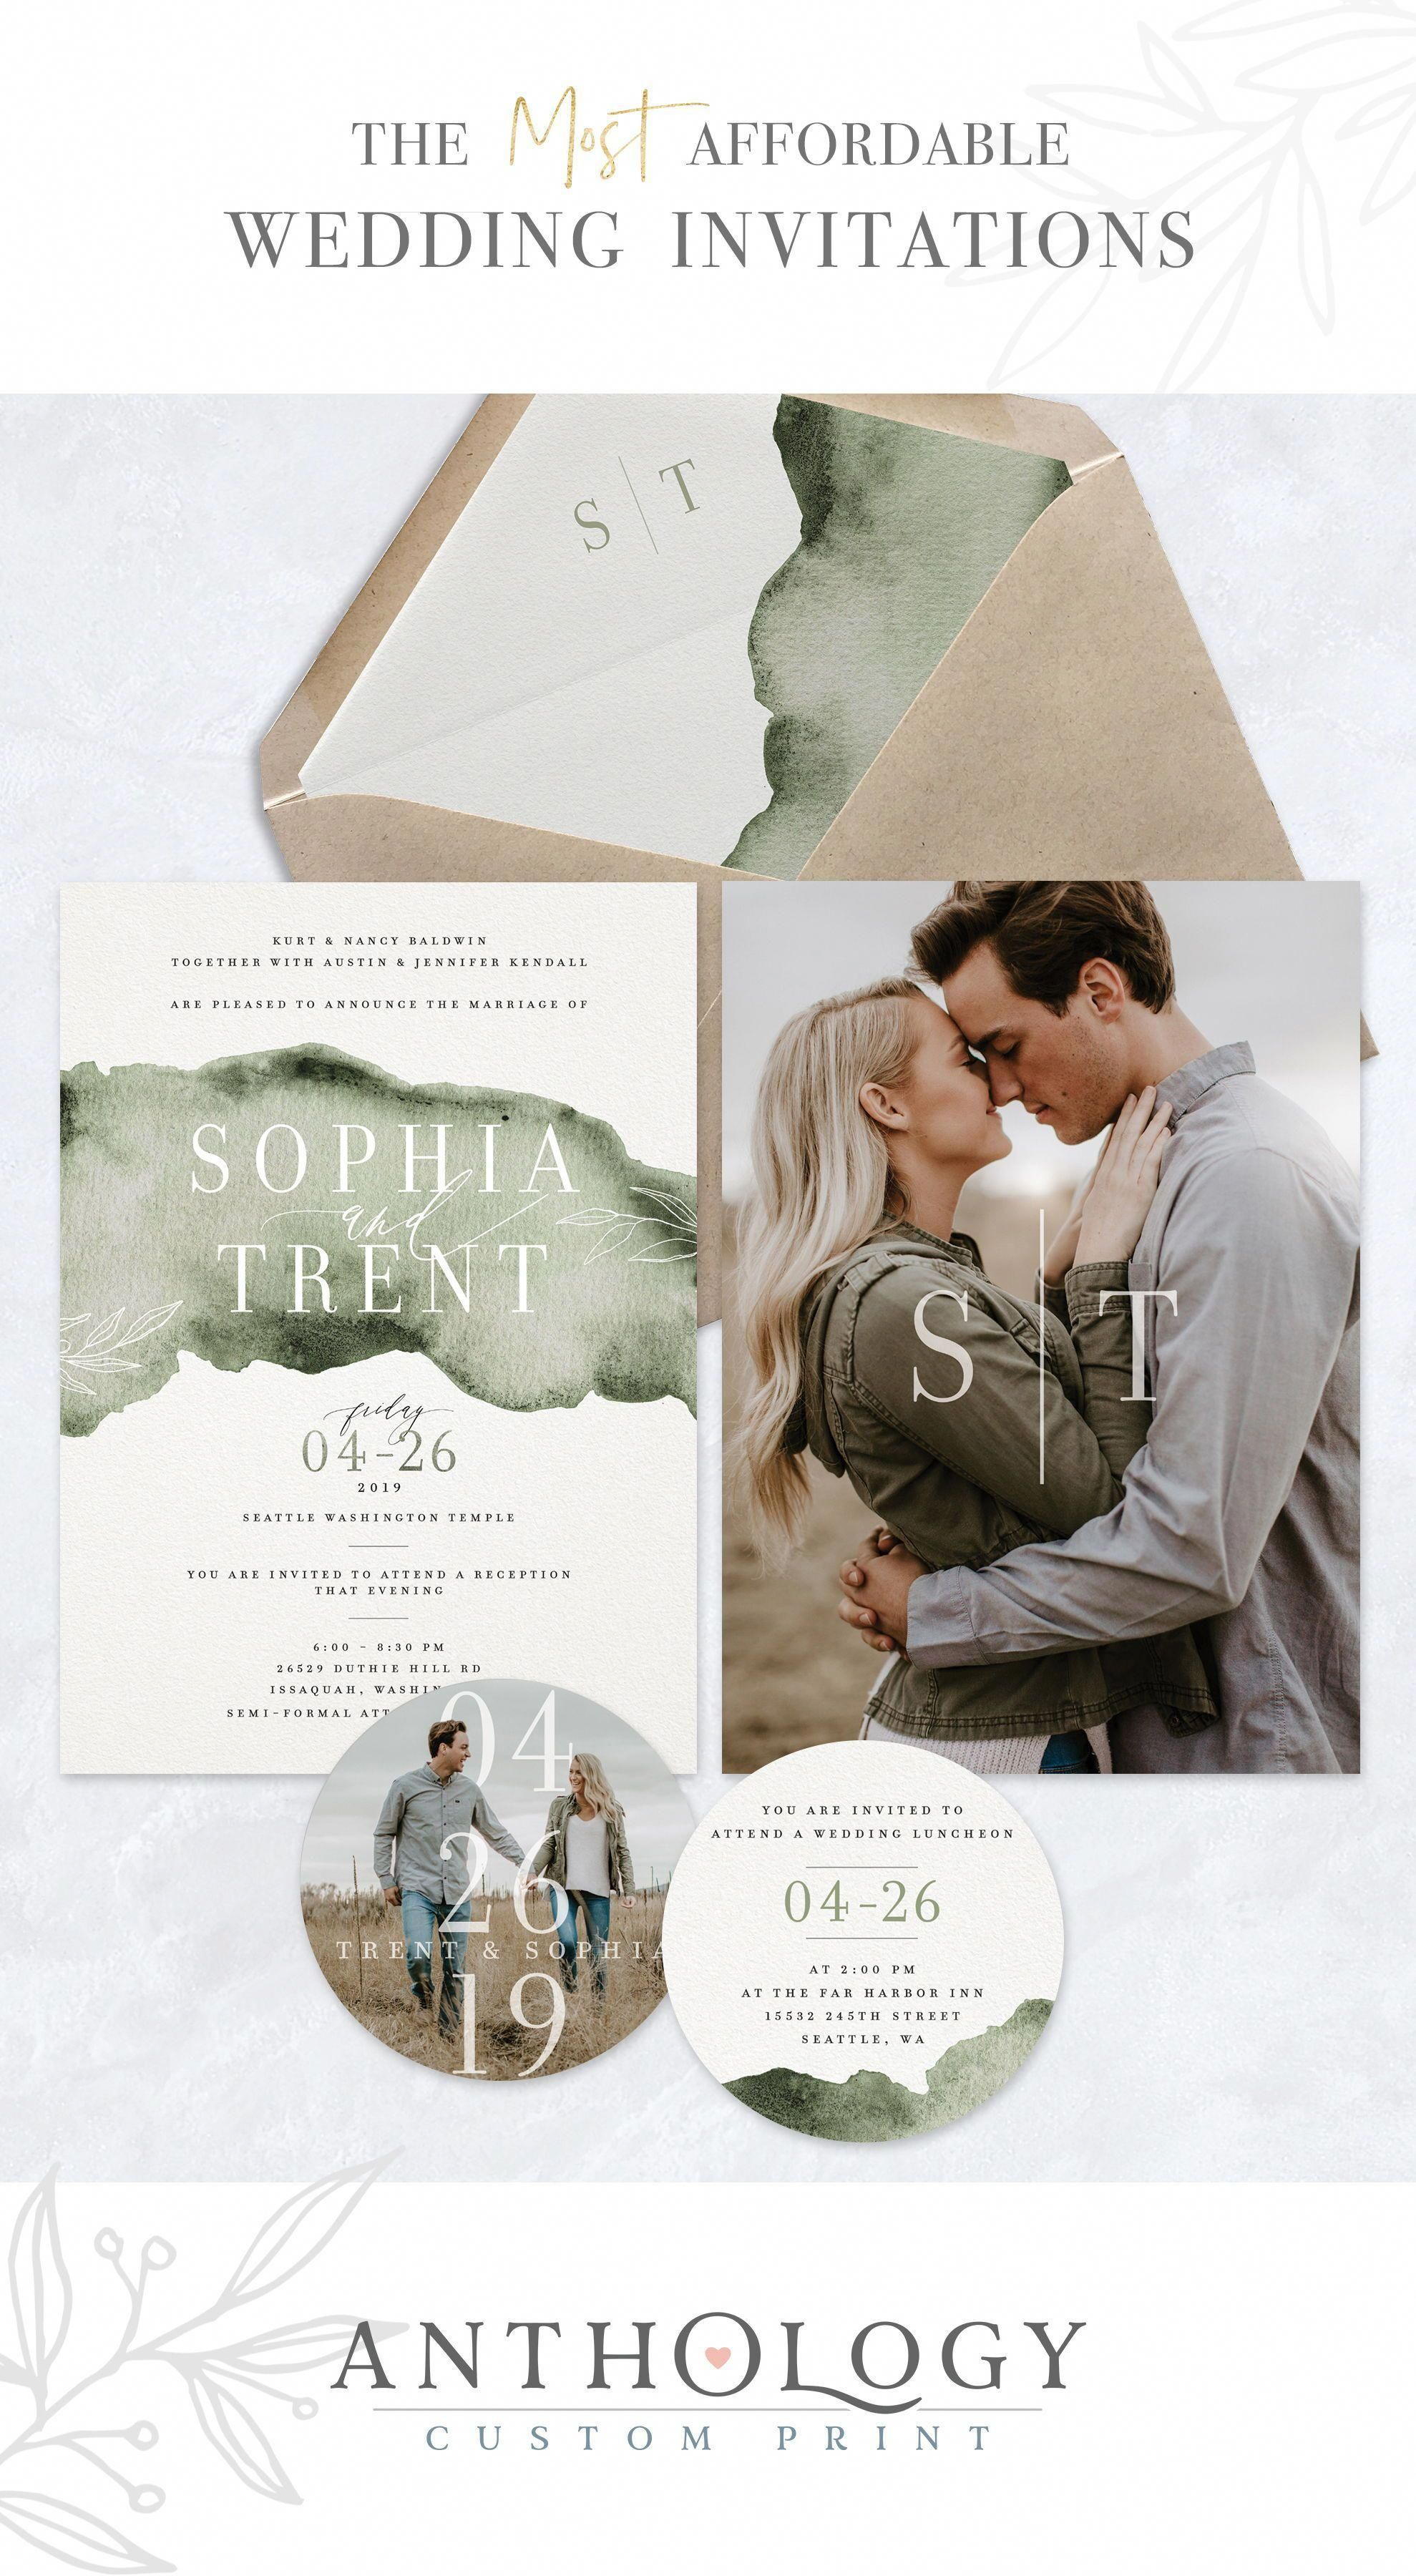 Watercolor Modern Wedding Invites Affordable Wedding Invitations In 2020 Wedding Invitations With Pictures Affordable Wedding Invitations Modern Wedding Invitations